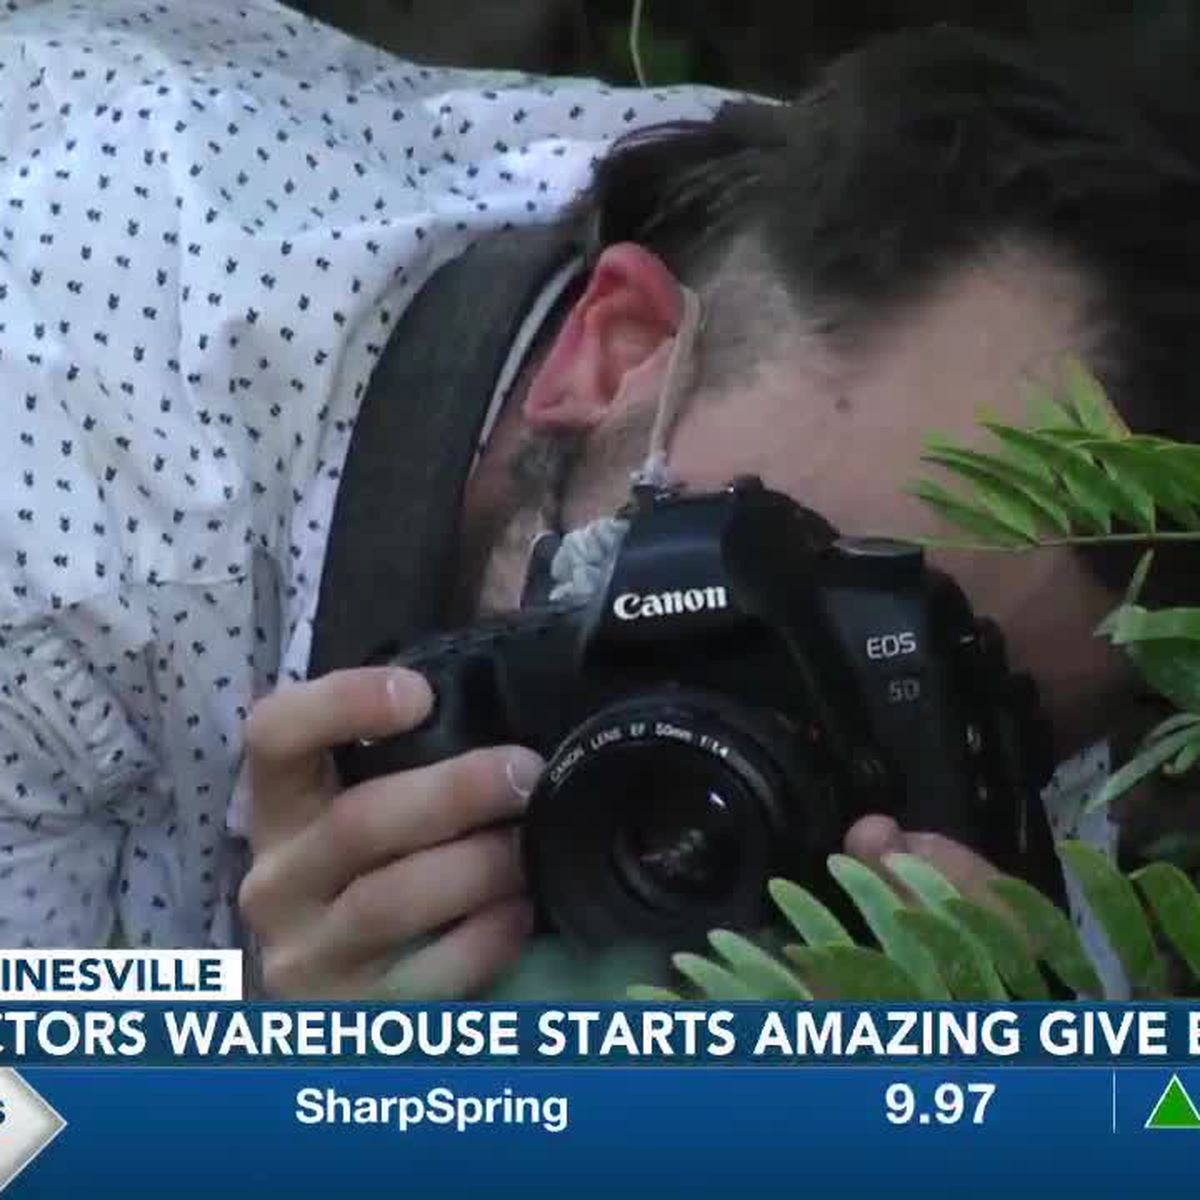 Actors Warehouse Starts Amazing Give Early